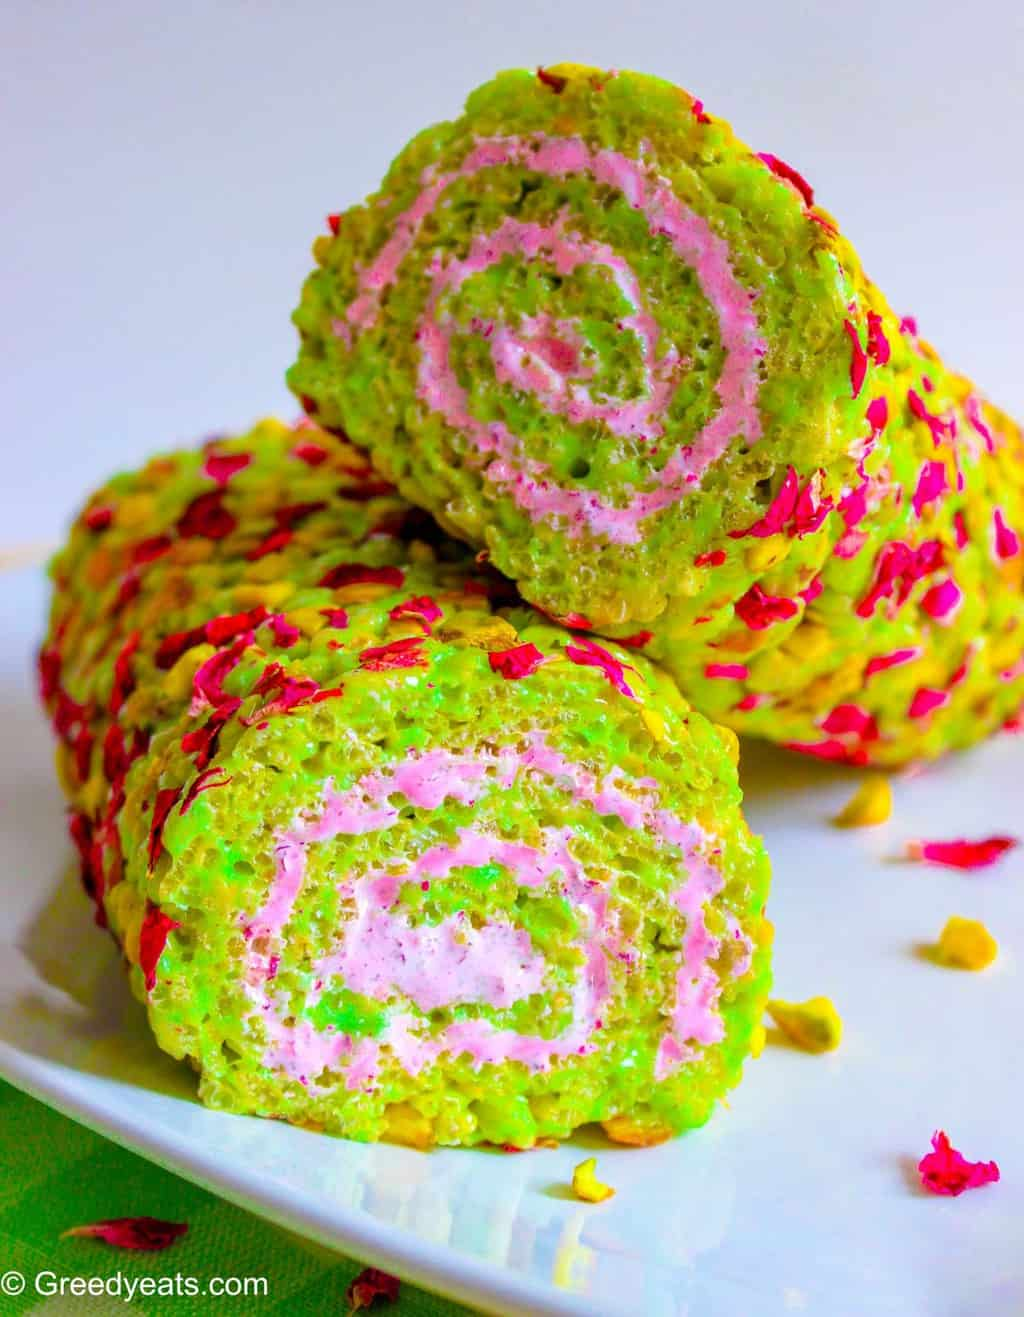 Best Rice Crispie Treats flavored with pistachios and rose, filled with pink marshmallow fluff.